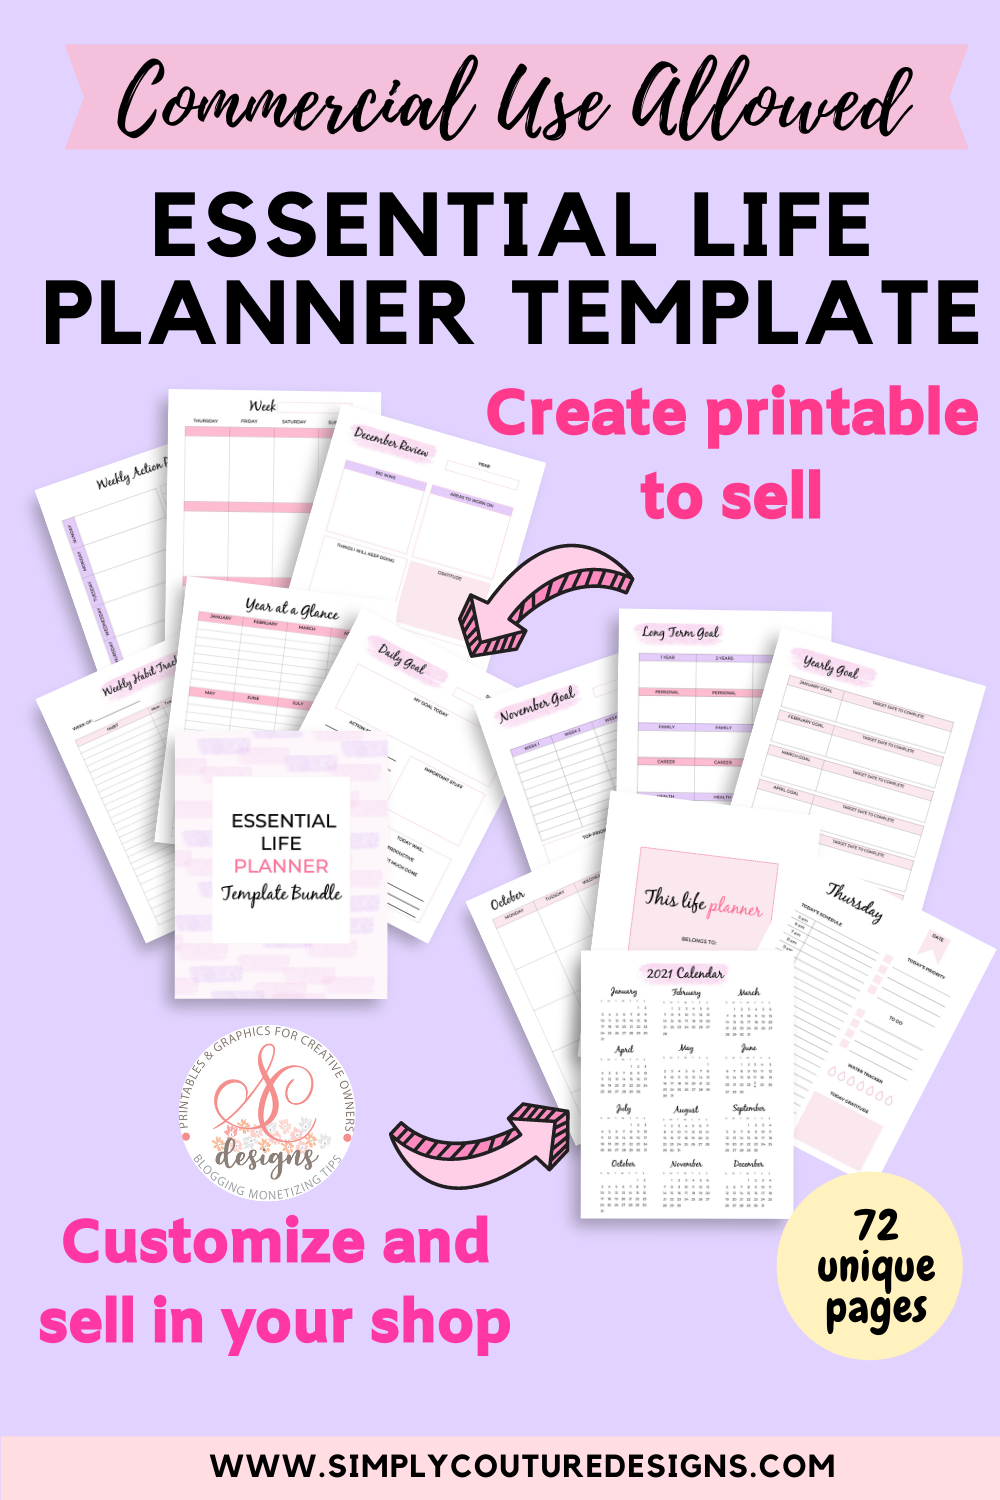 Essential Life Planner Template to create printables to sell